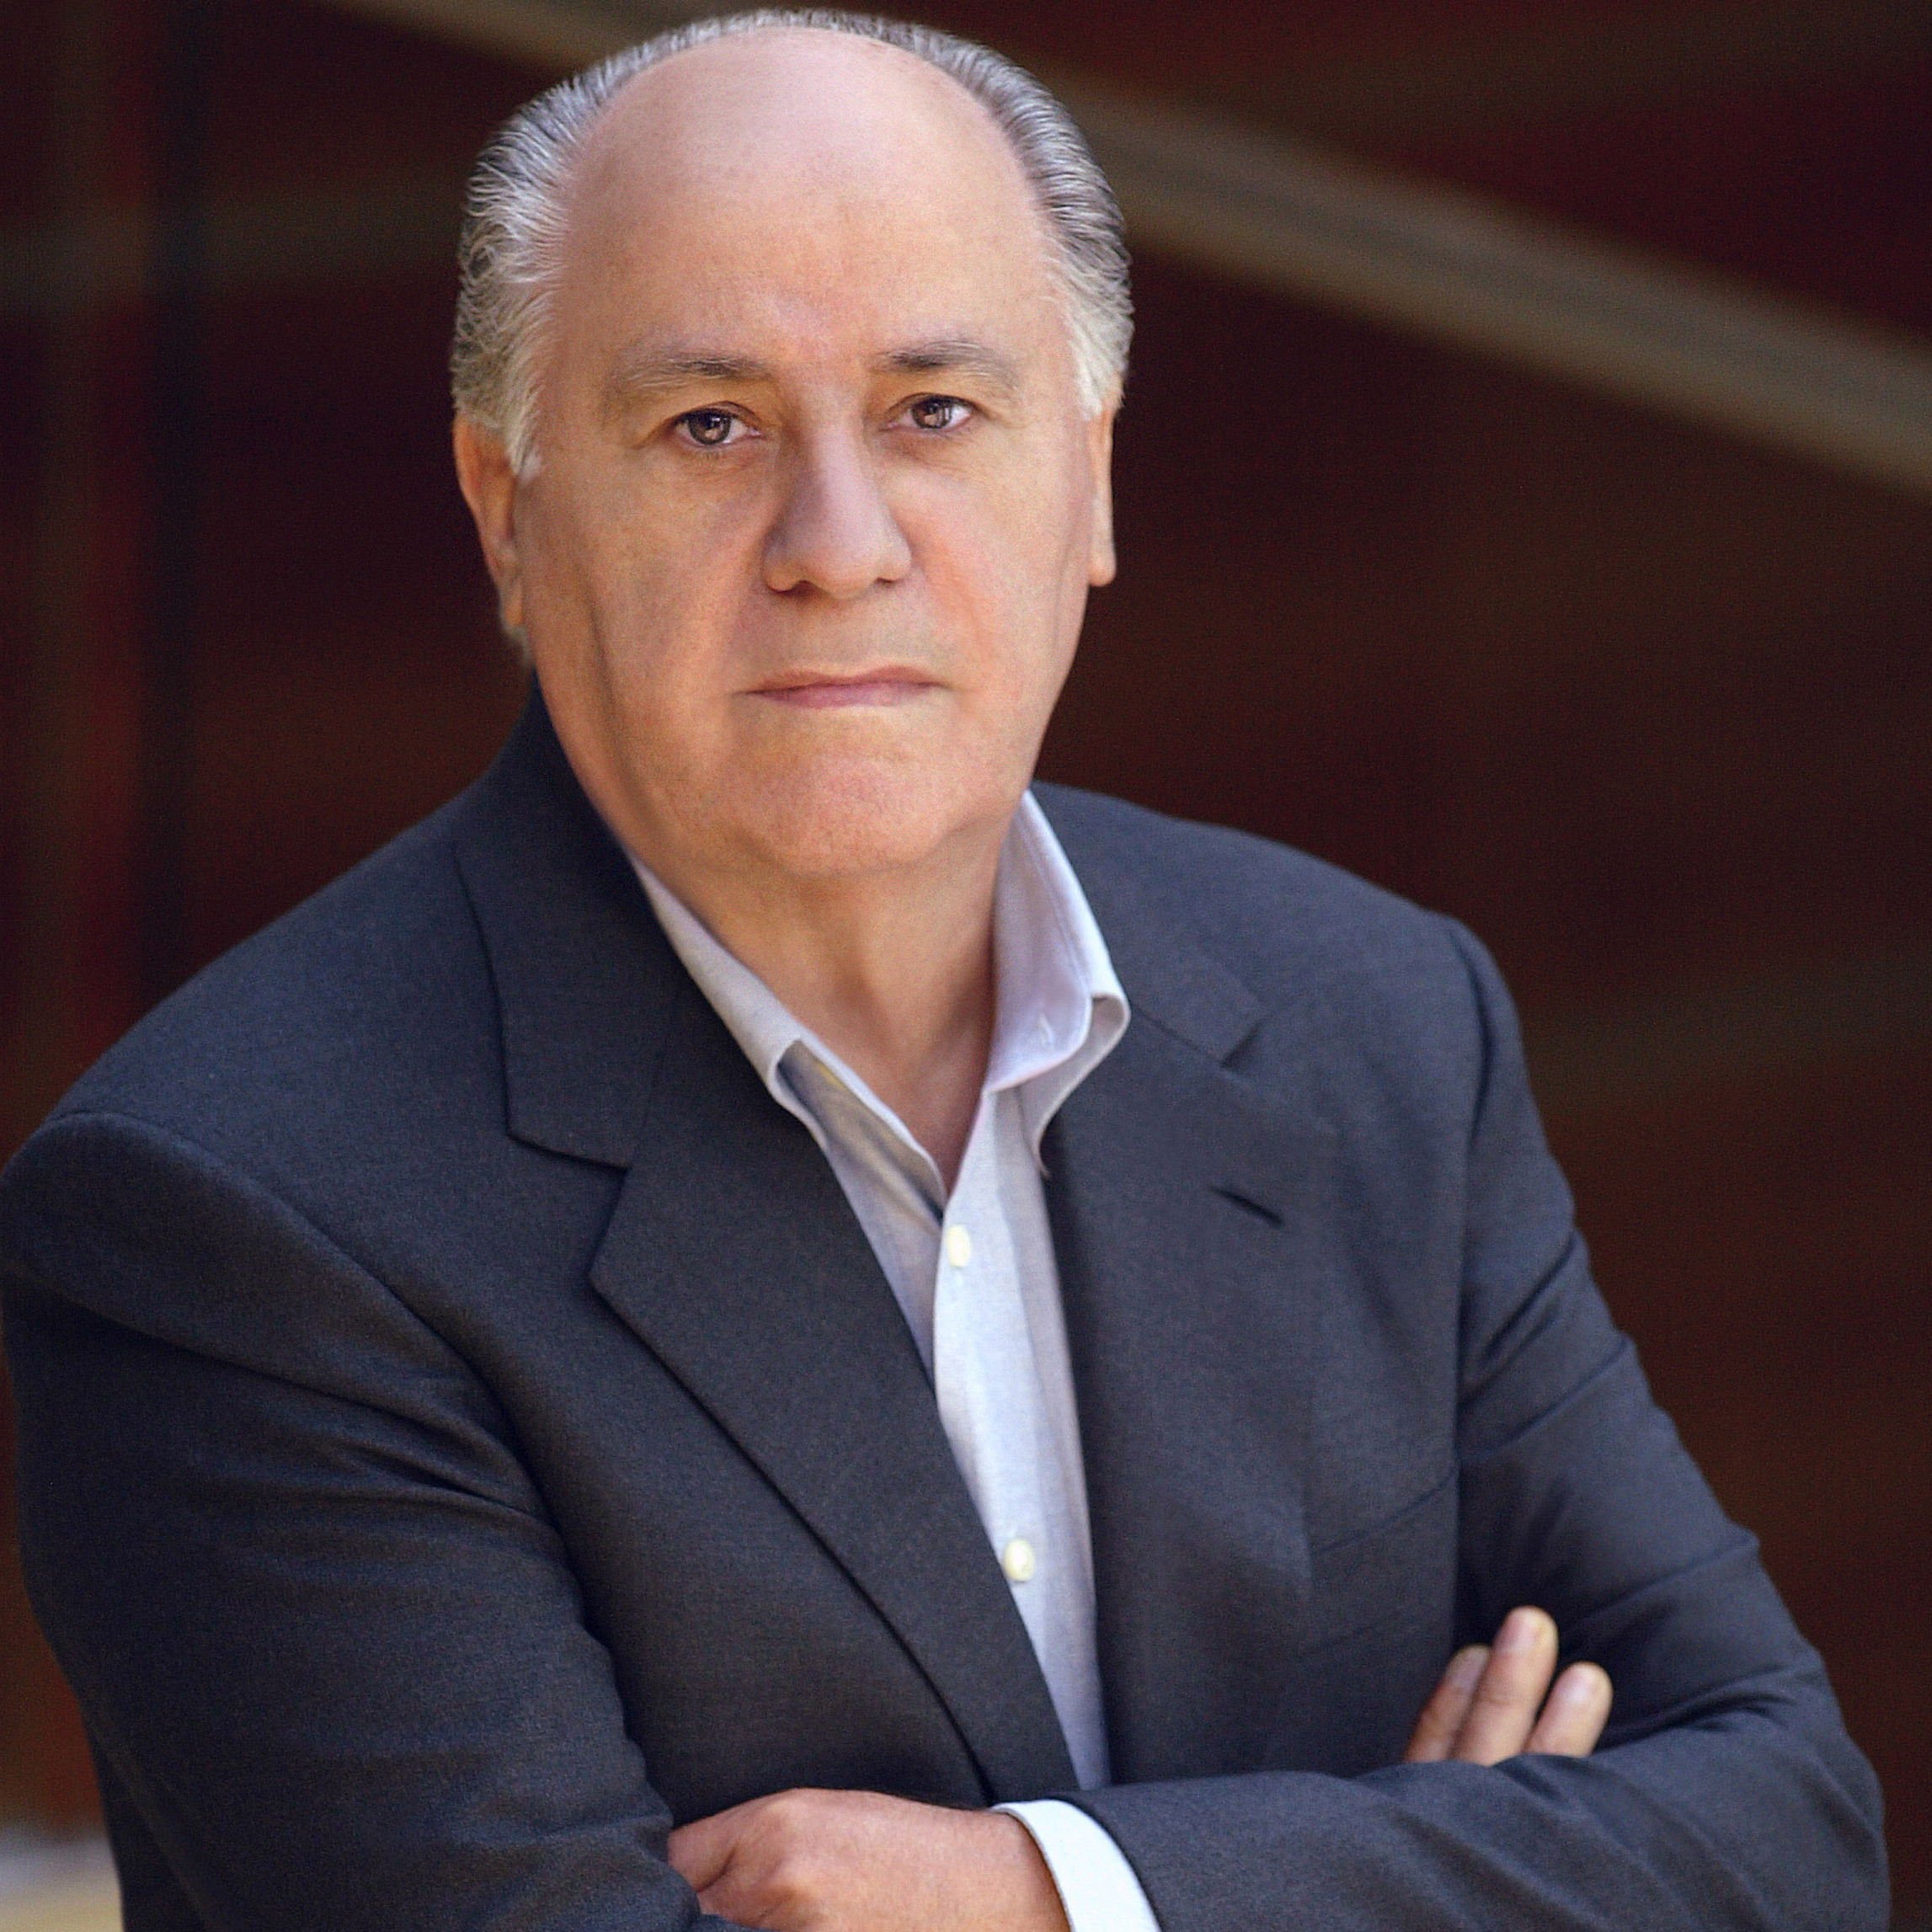 A notorious recluse, Amancio Ortega founded the Zara clothing chain and is No. 3 on Forbes magazine's billionaire list.